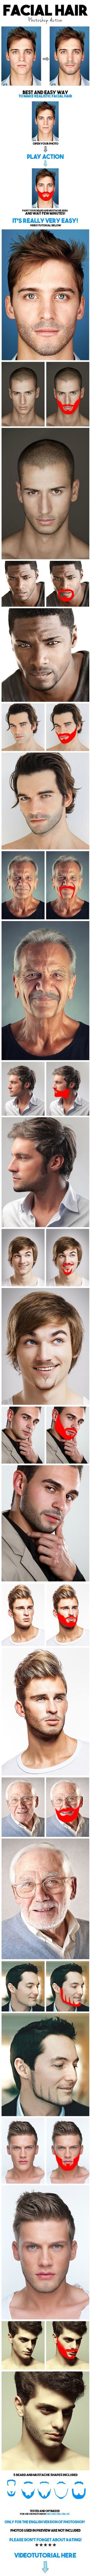 Facial Hair Photoshop Action - Best and easy way to make realistic facial hair in Photoshop. Get this PSD atn for only $6 !